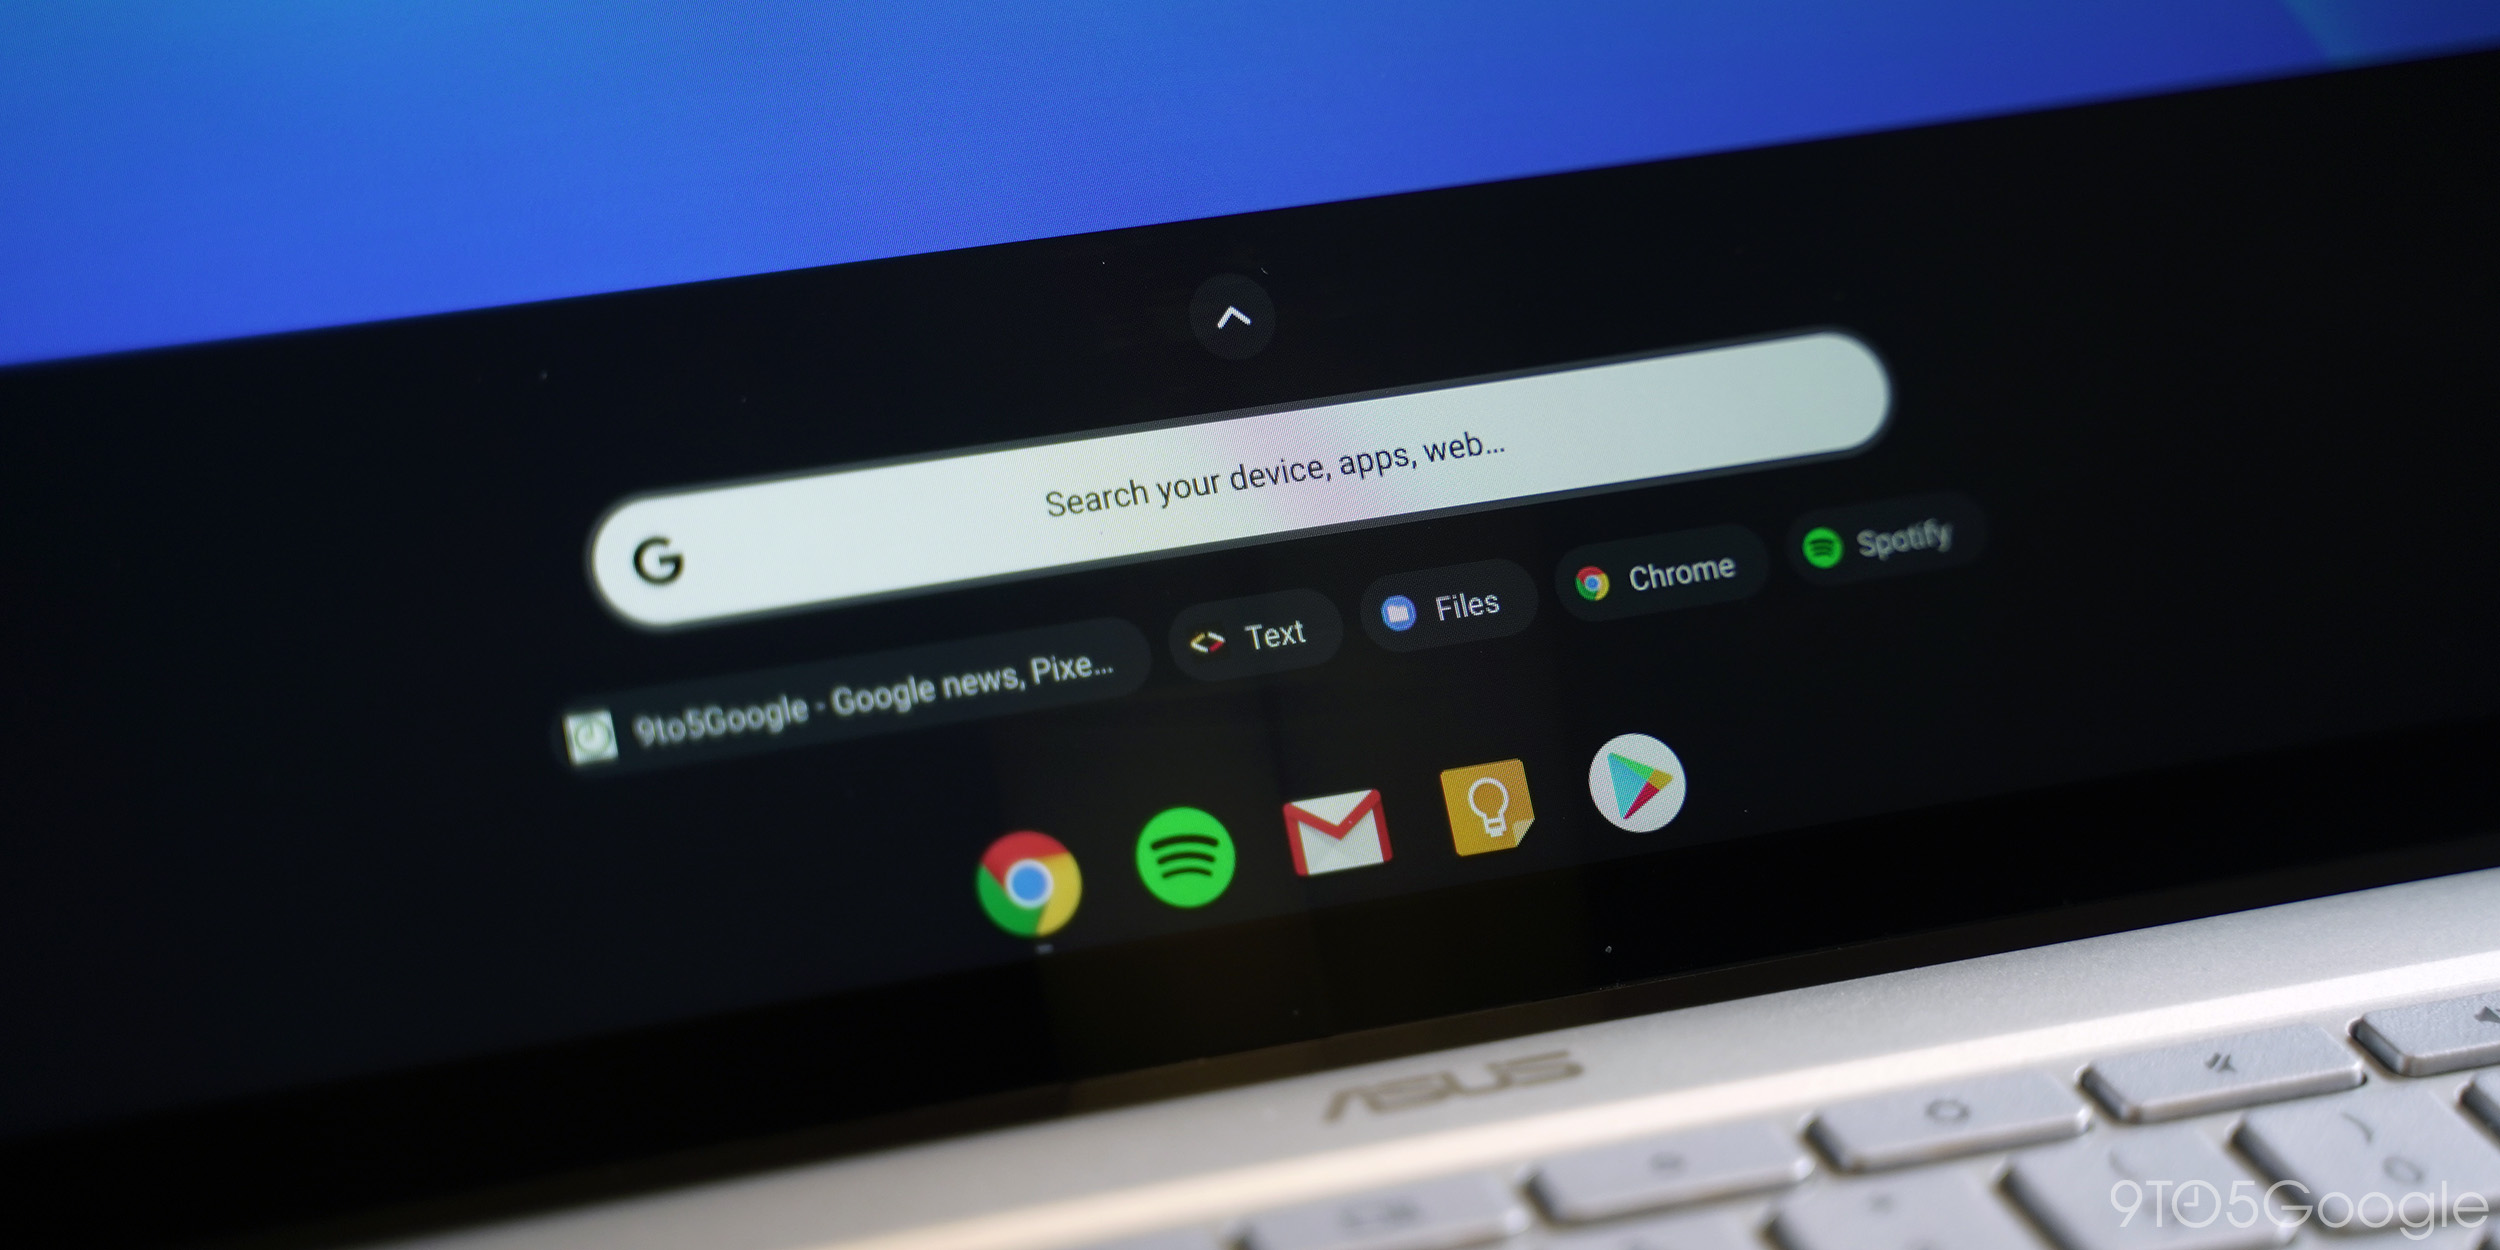 Google to make Chrome OS shelf icons circular & uniform - 9to5Google